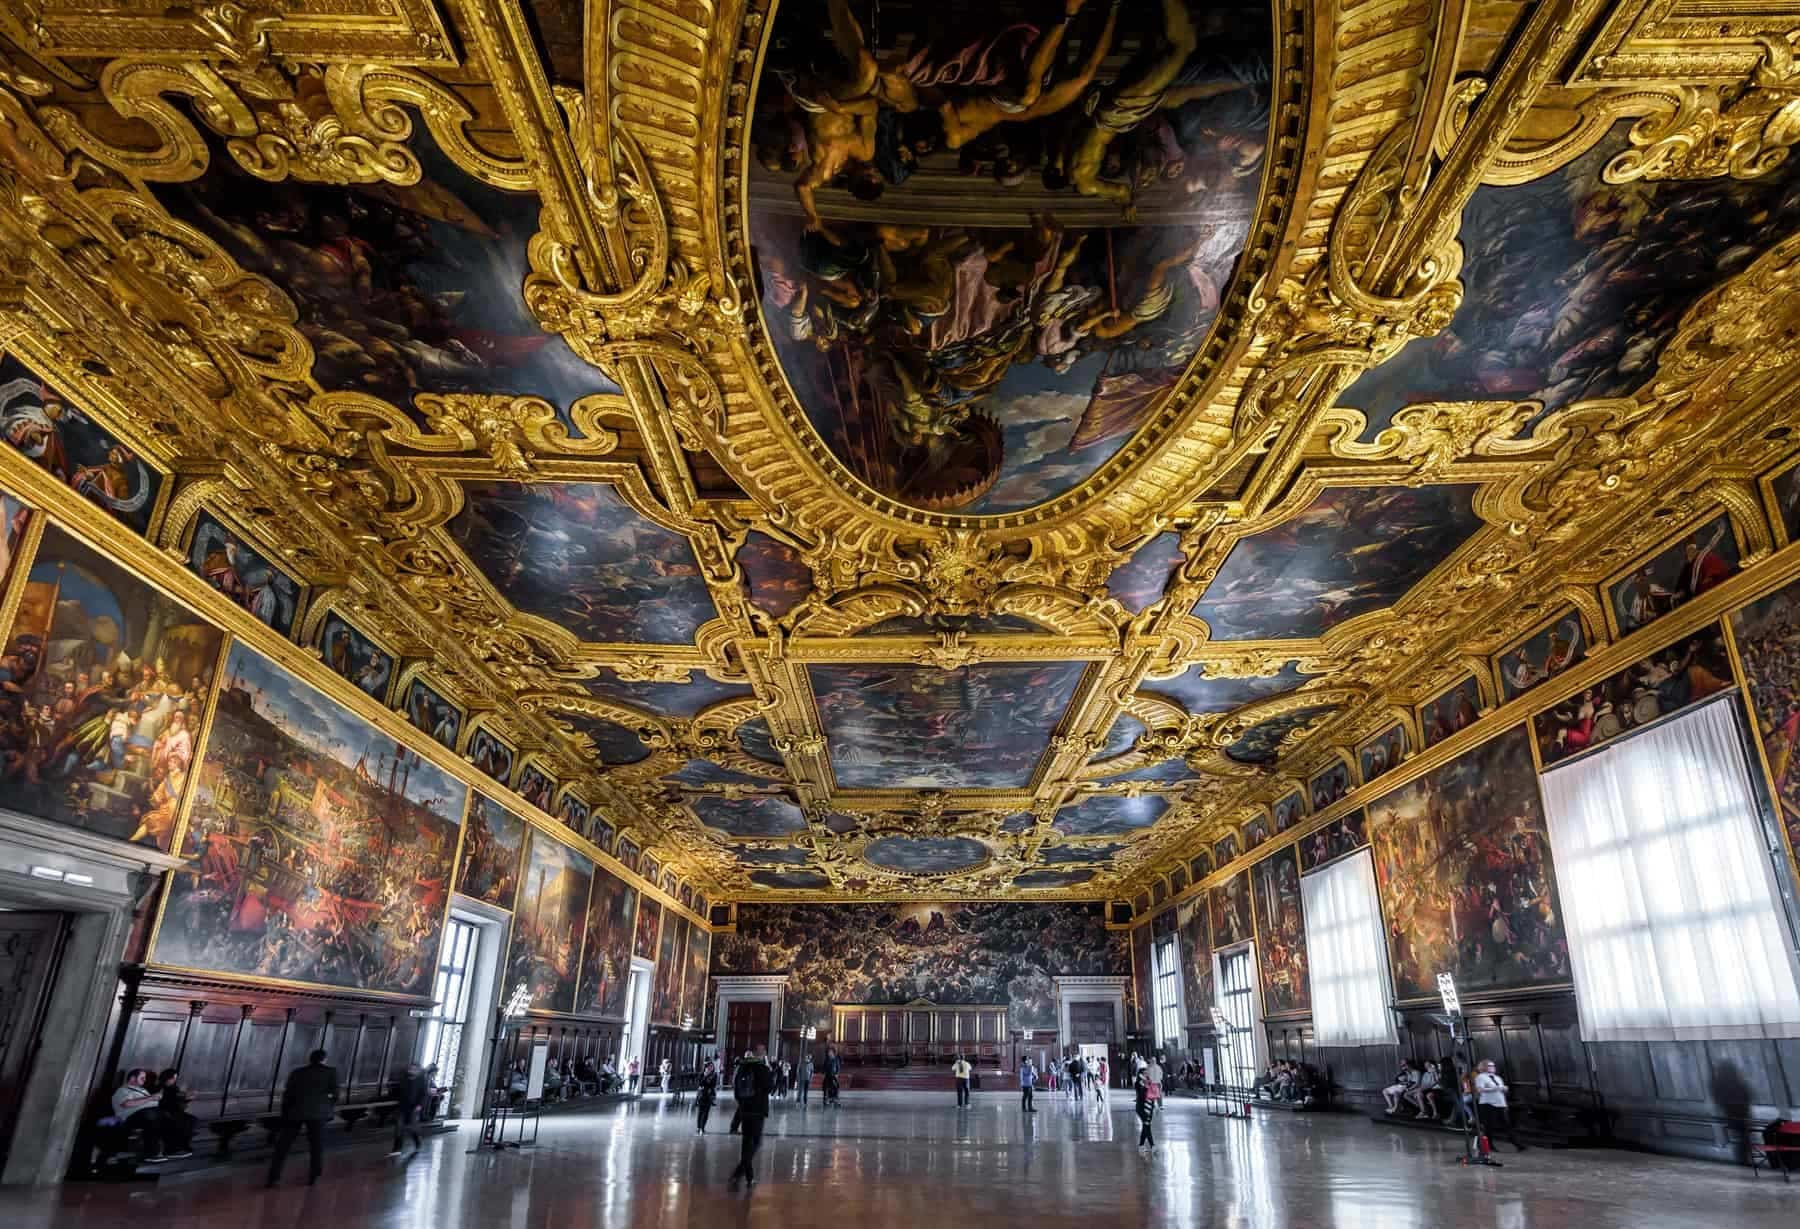 Interior of the Doge`s Palace (Palazzo Ducale), the Higher Council Hall. Doge`s Palace was built in 15th cent on St Mark`s Square and is one of the main tourist attractions of Venice.